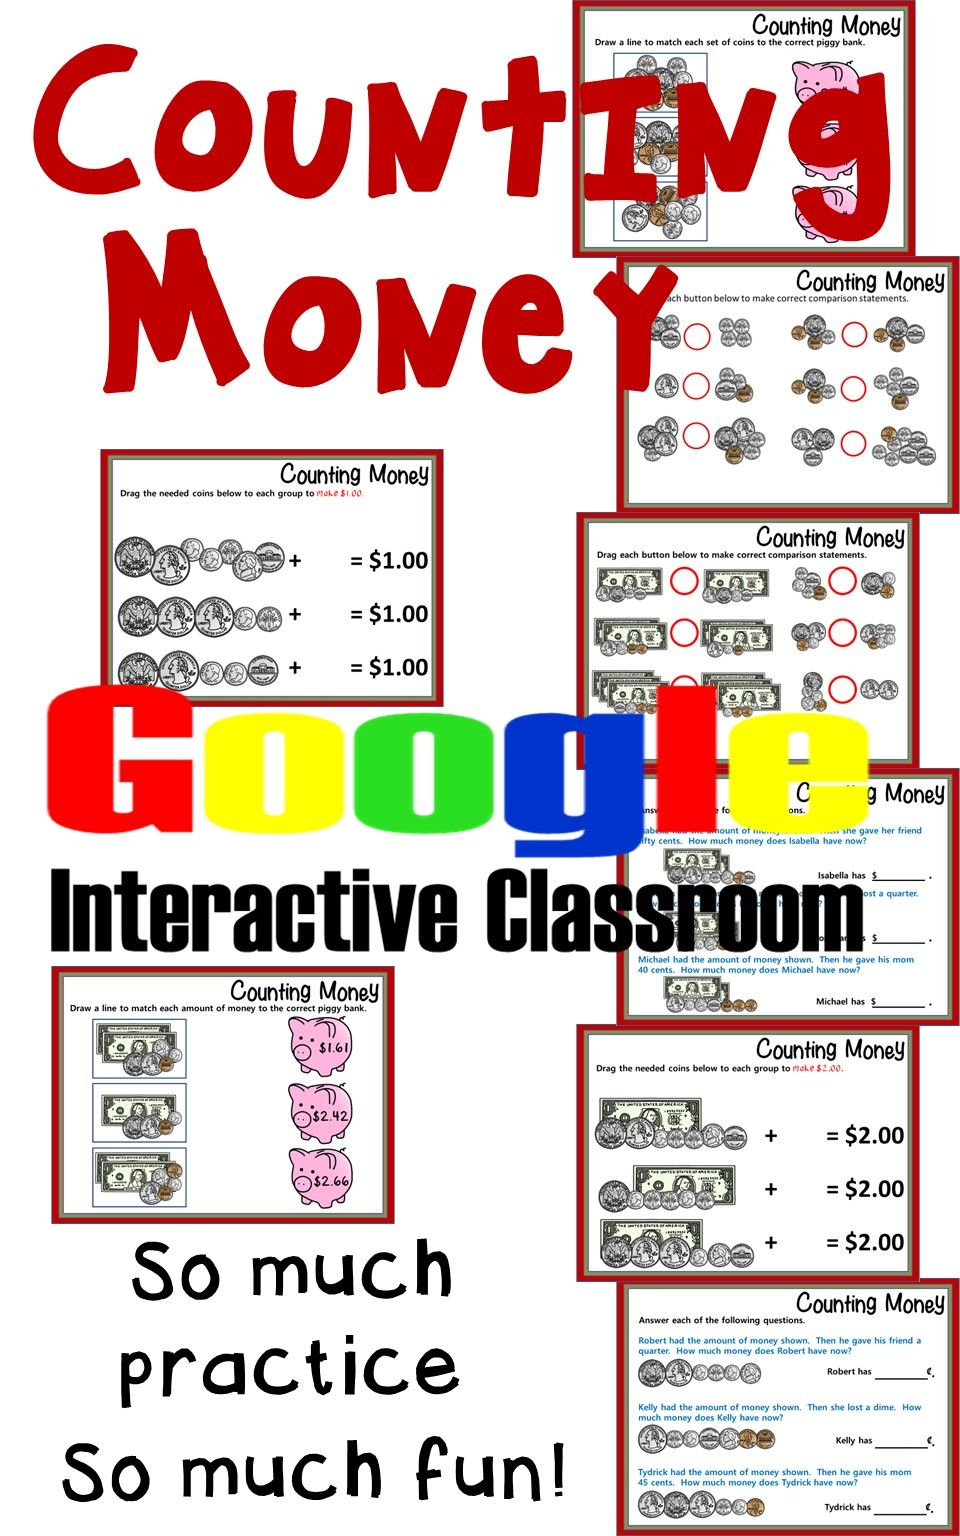 Your students will get so much practice counting coins and